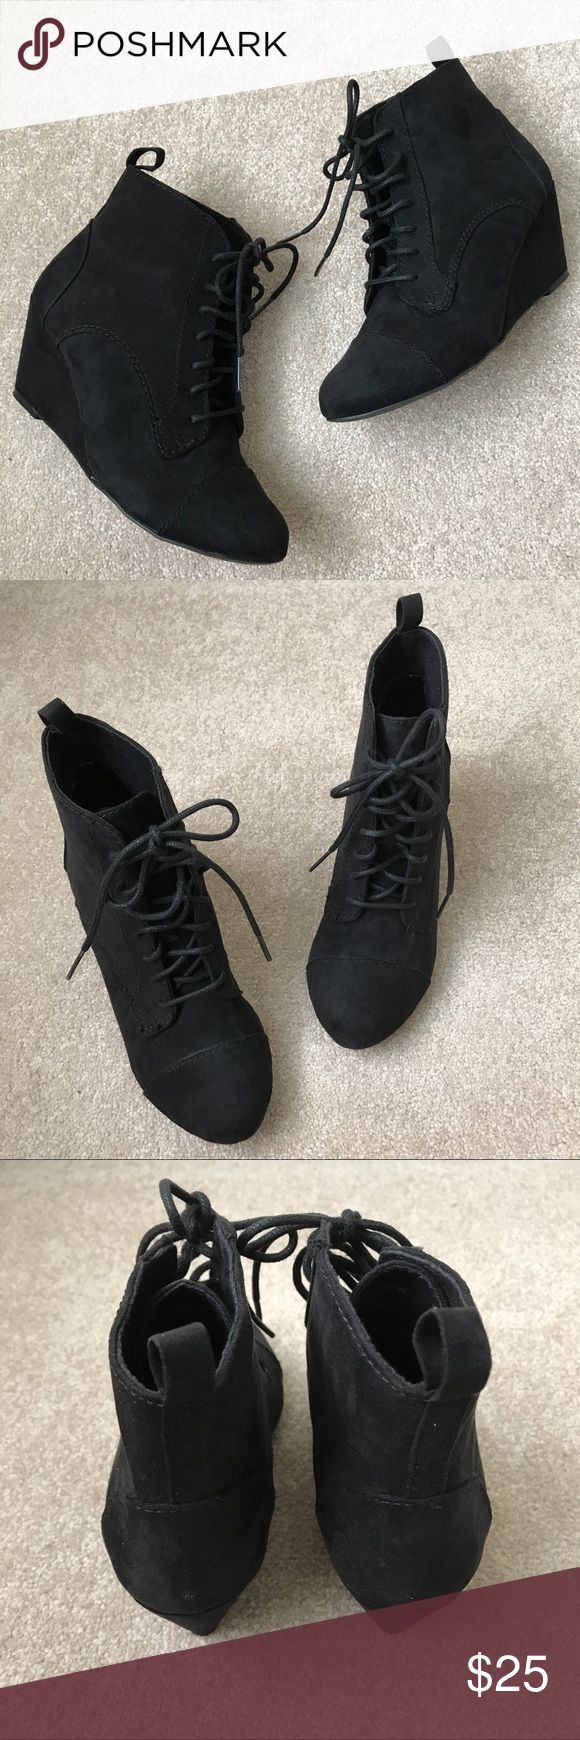 Zara Booties Zara ankle booties, suede material with a small wedge. Worn a few times so still in good condition! Fits true to size, super comfy! Zara Shoes Ankle Boots & Booties